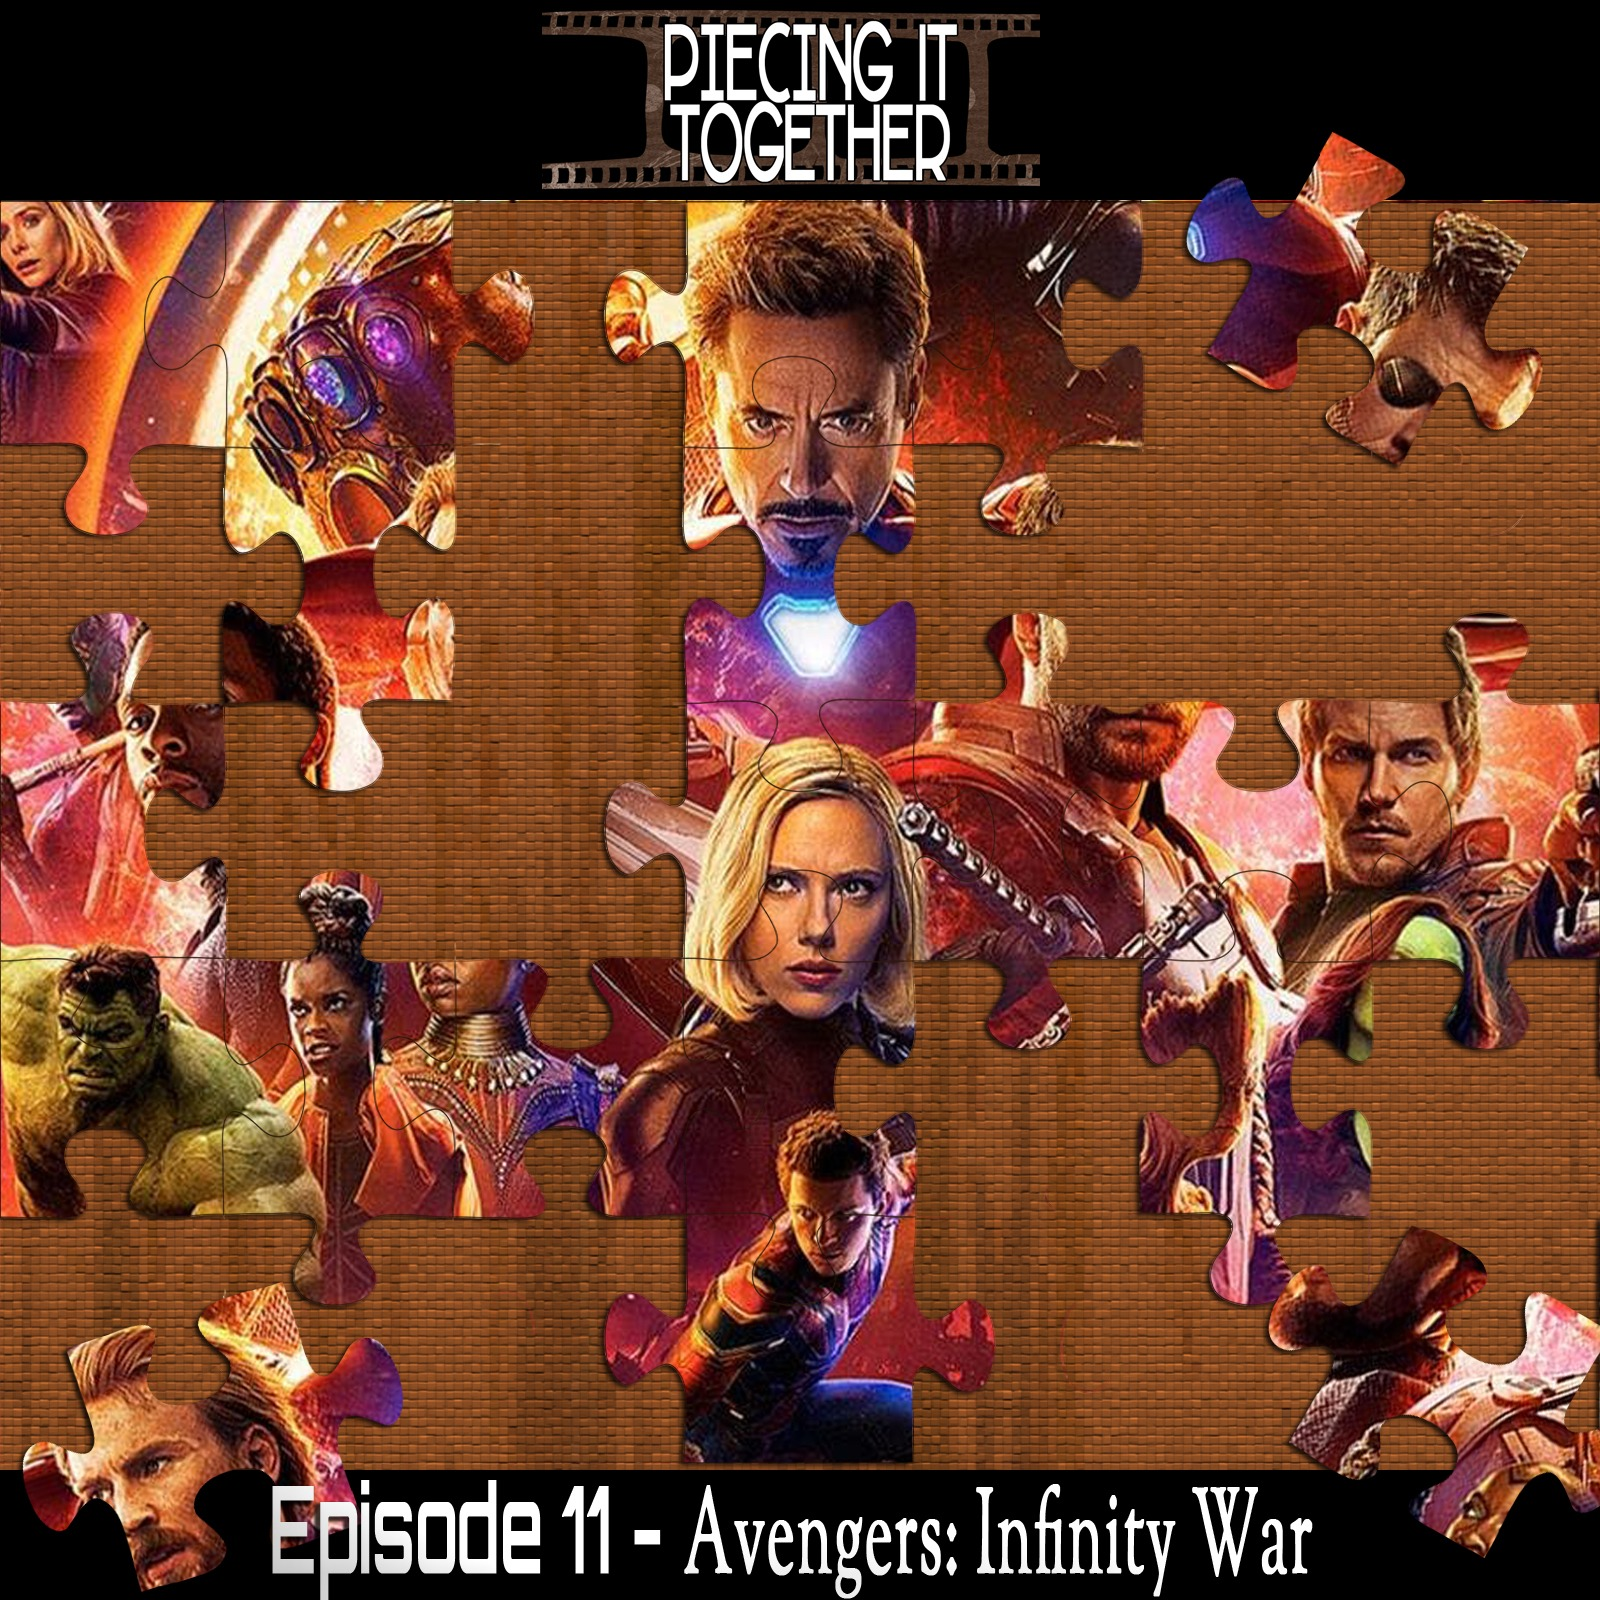 Avengers: Infinity War Super Episode